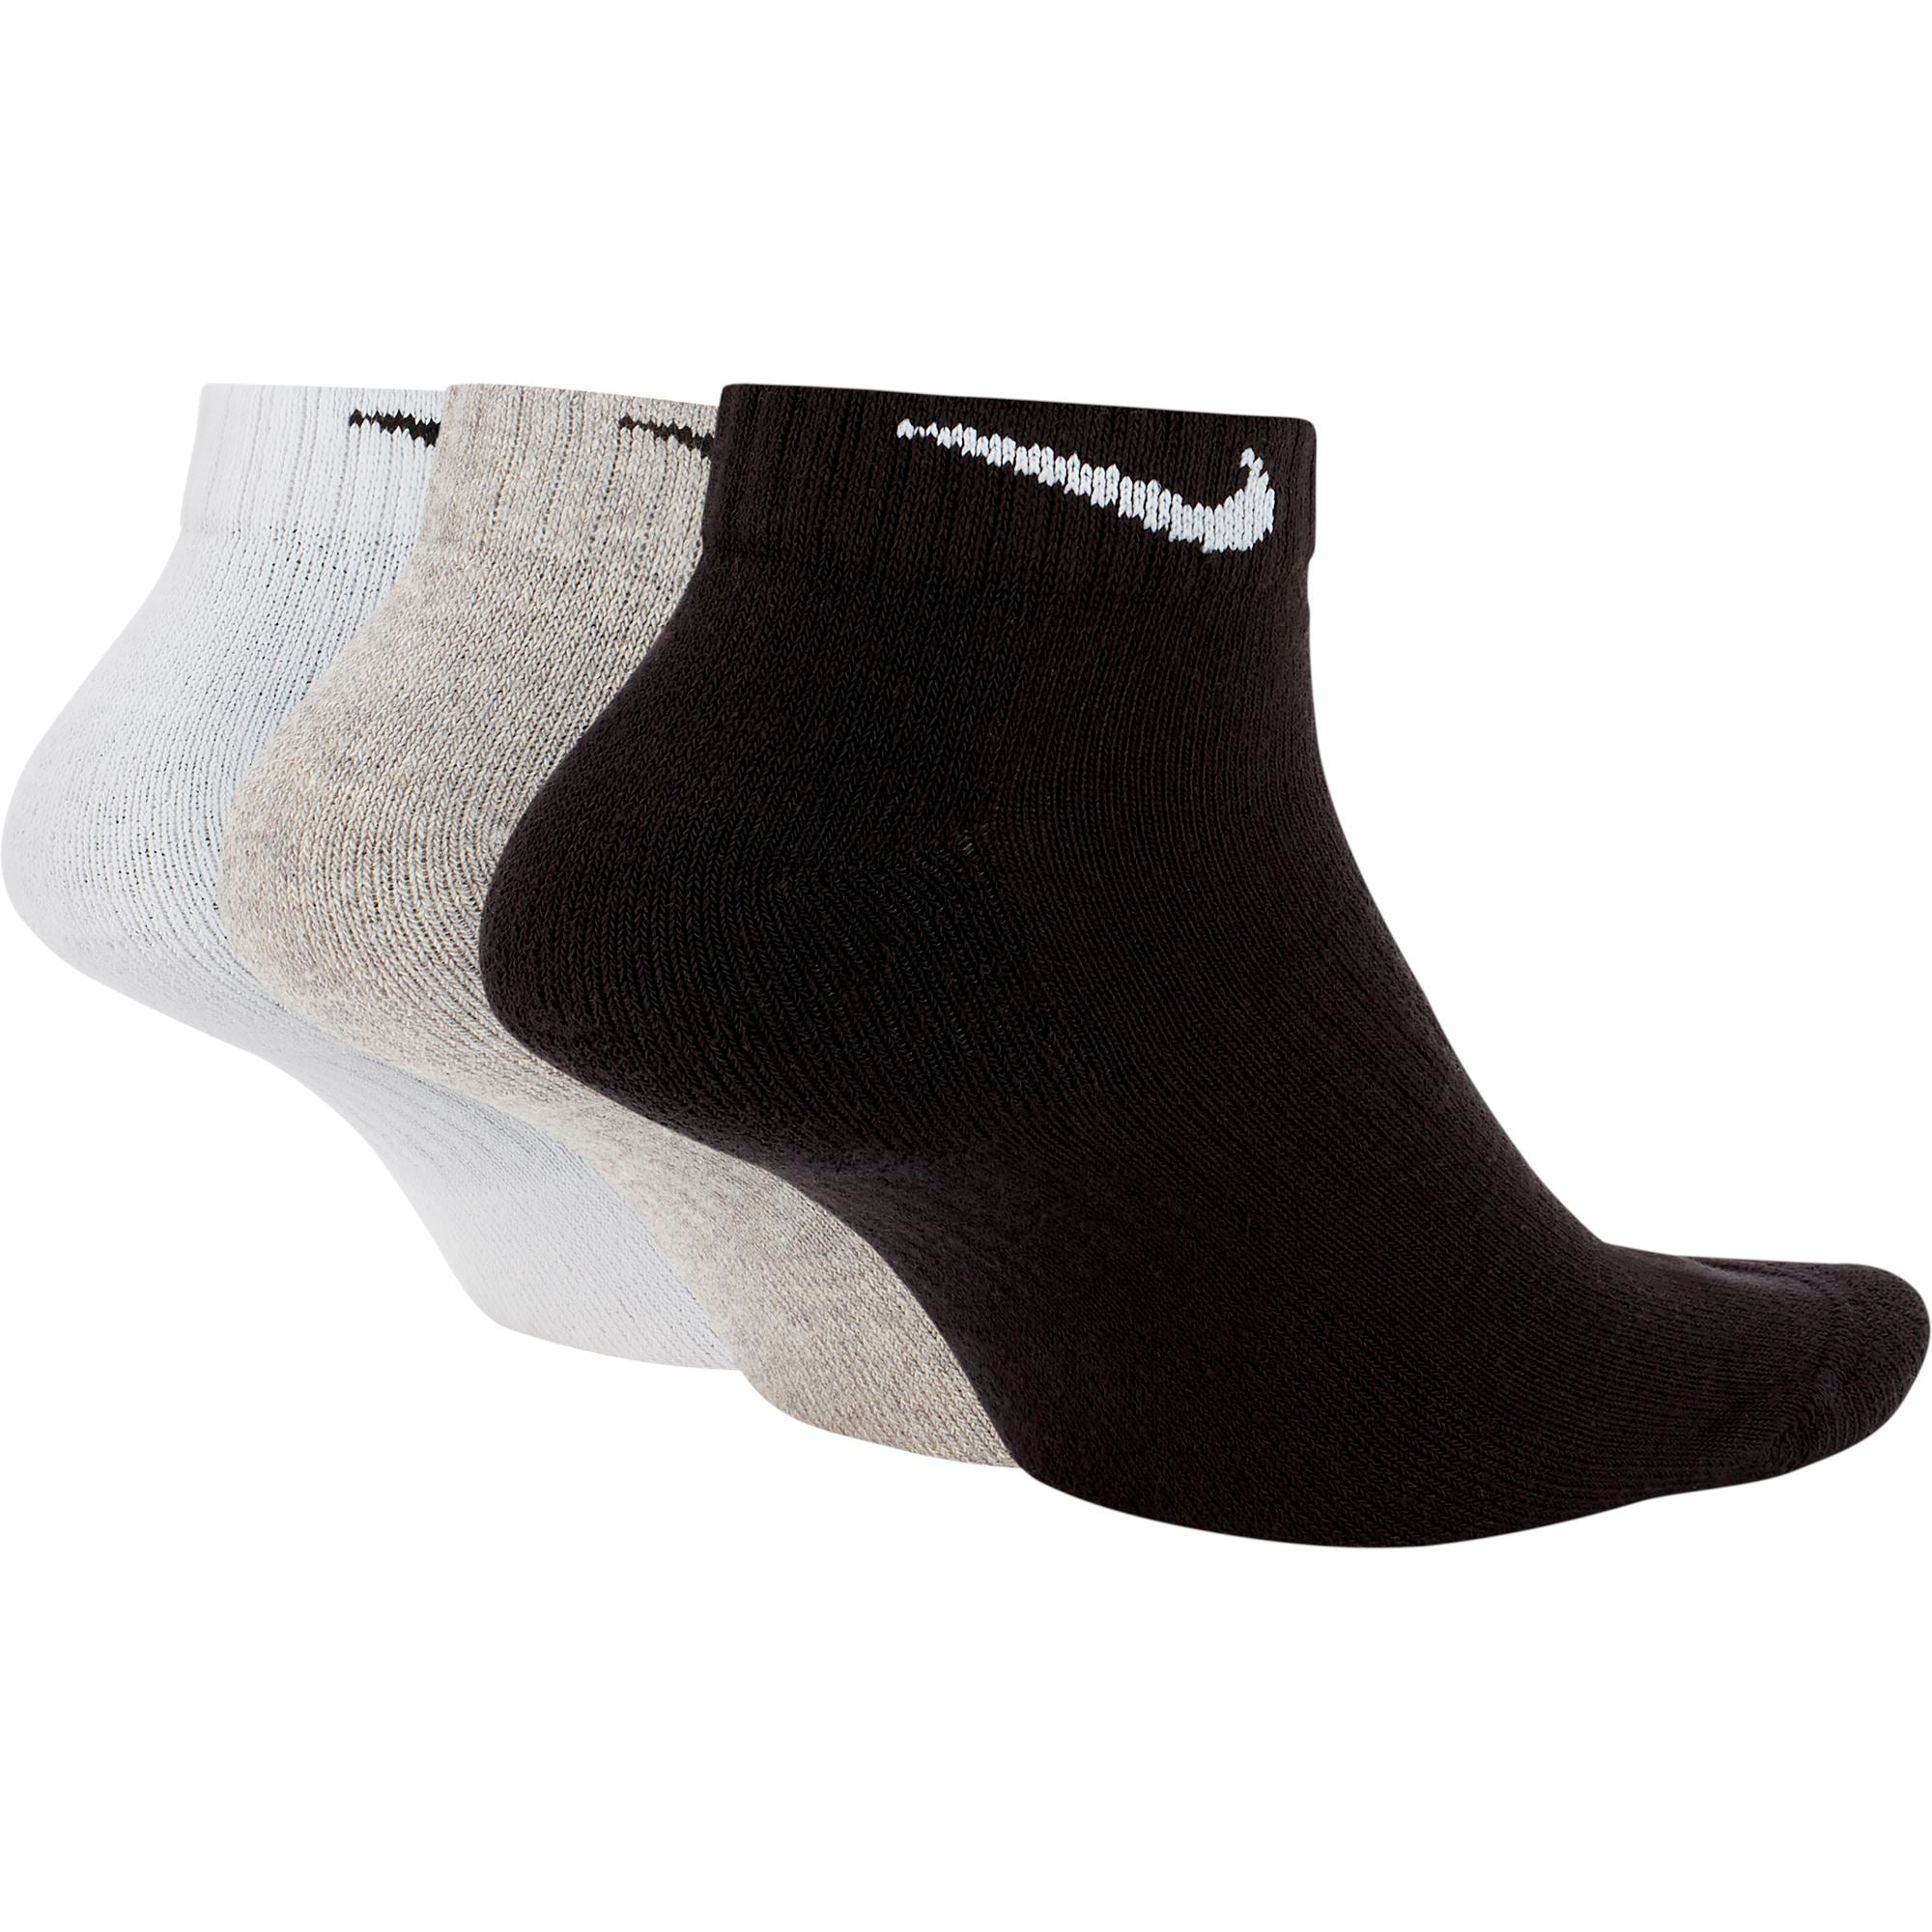 Nike Everyday Cushion Low (3 pack) - Multicolour SP-ApparelSocks-Unisex Nike